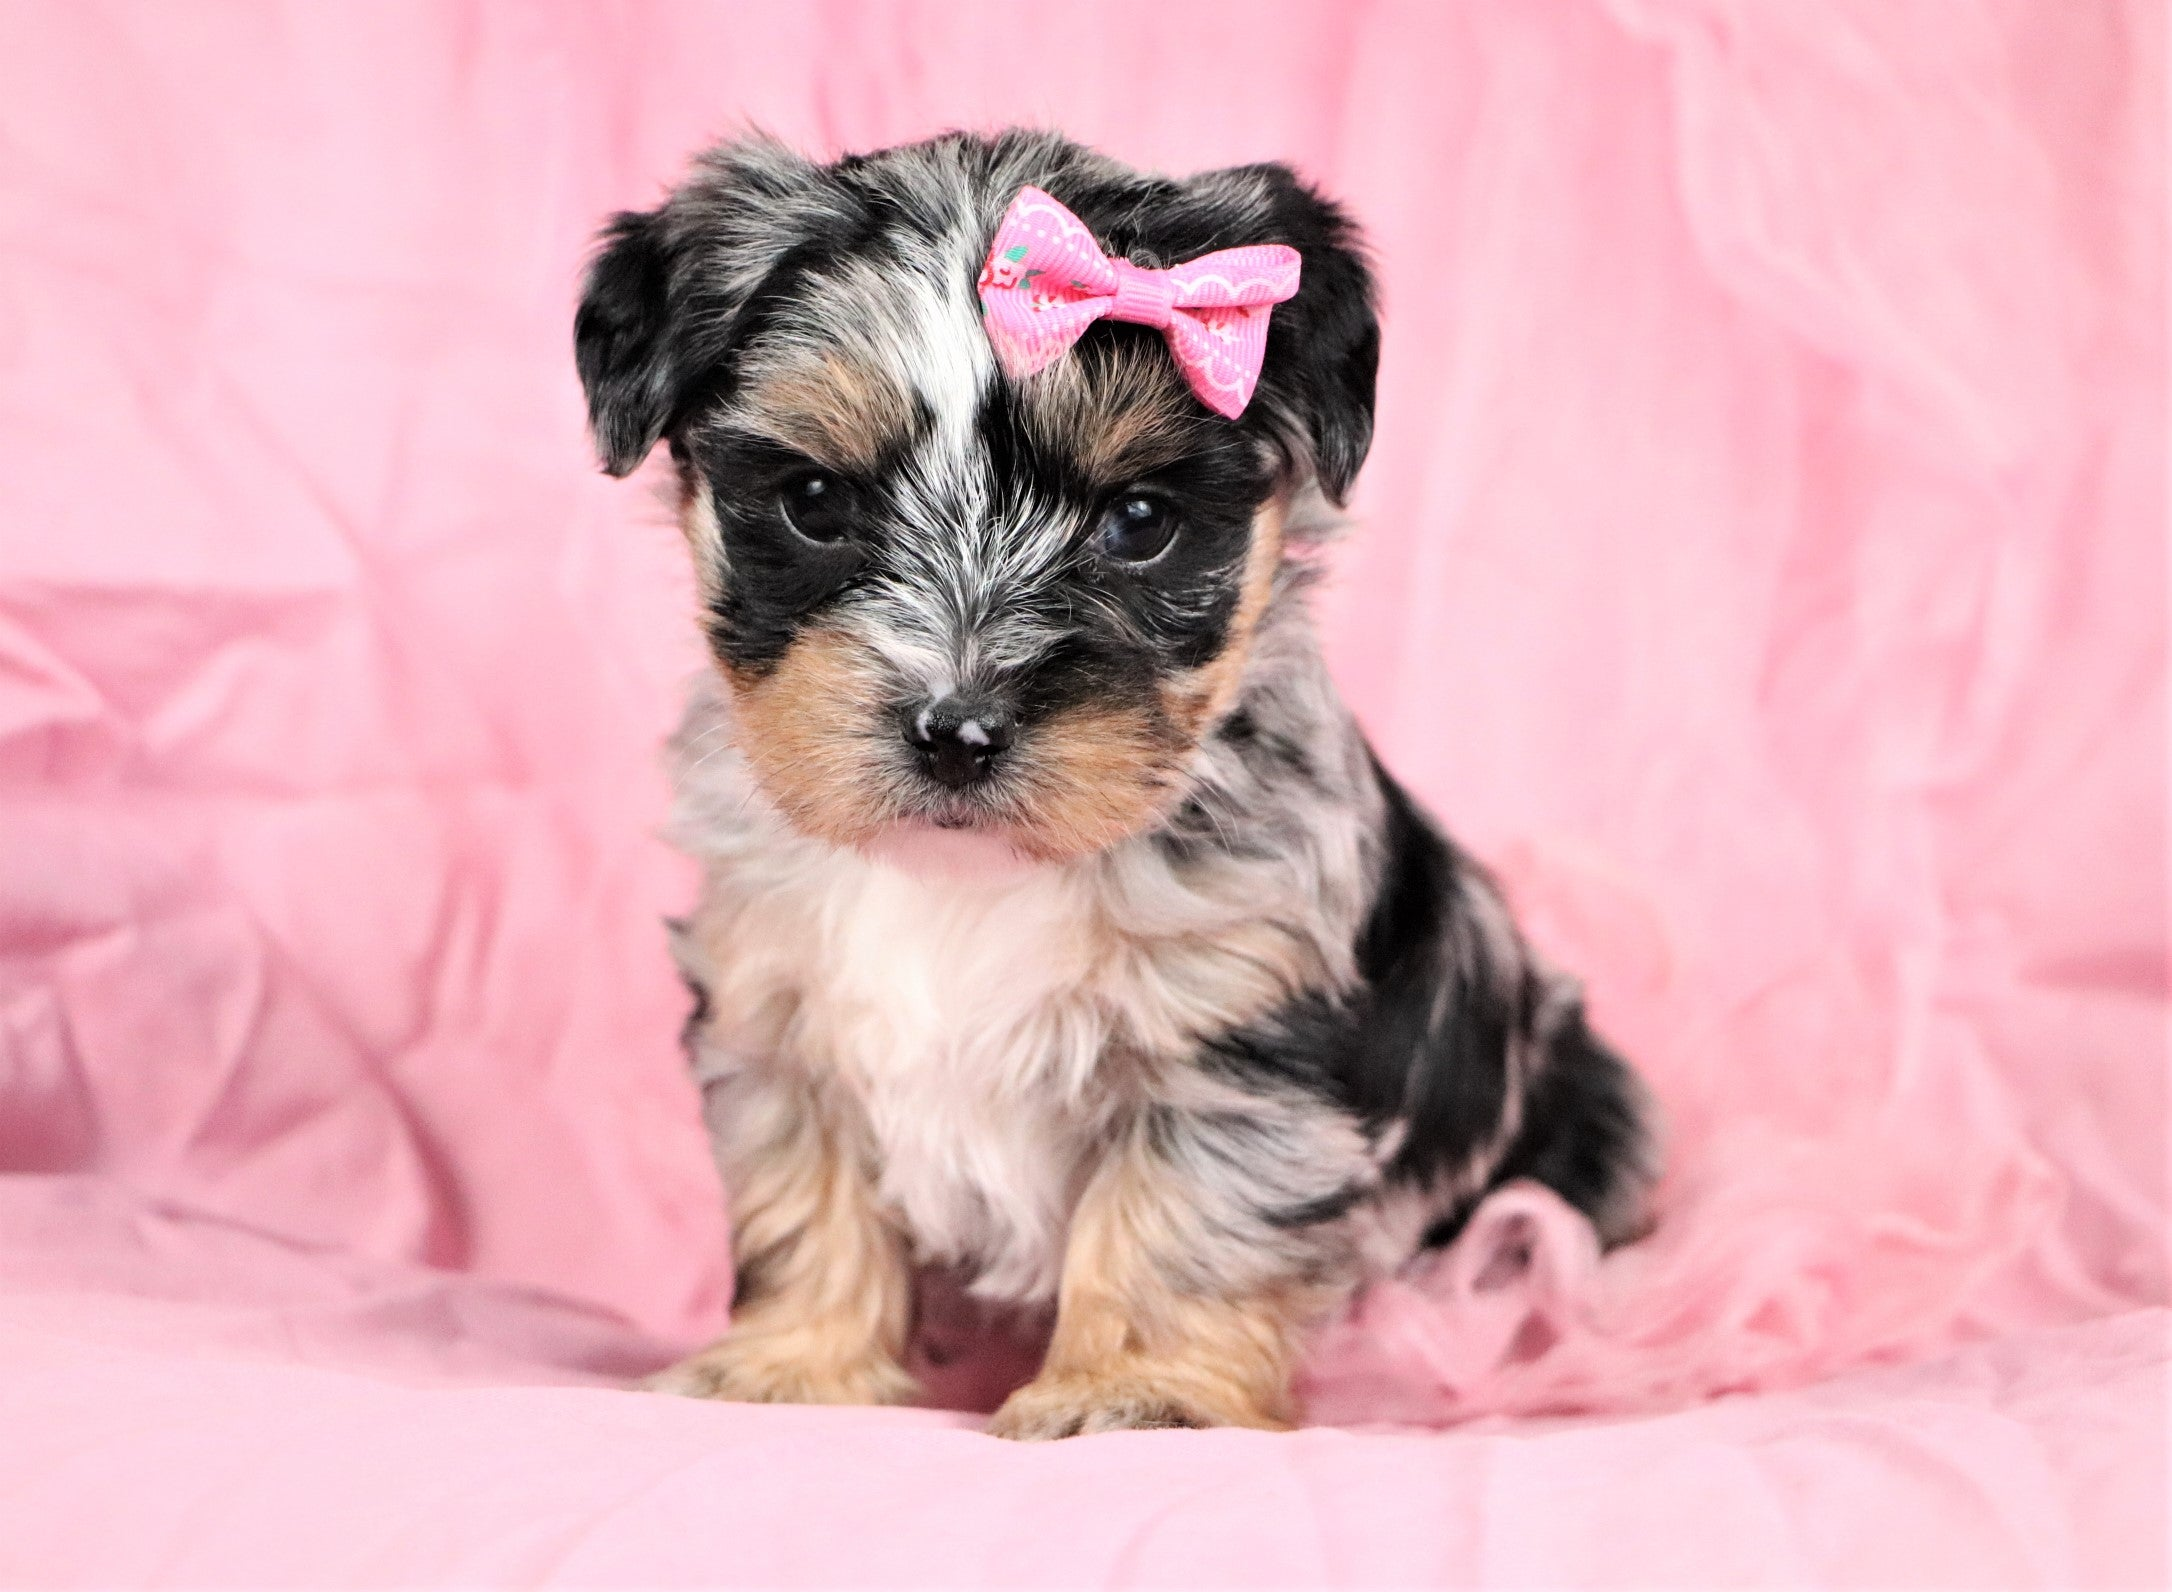 Nani Female Teacup Morkipoochon Puppy*